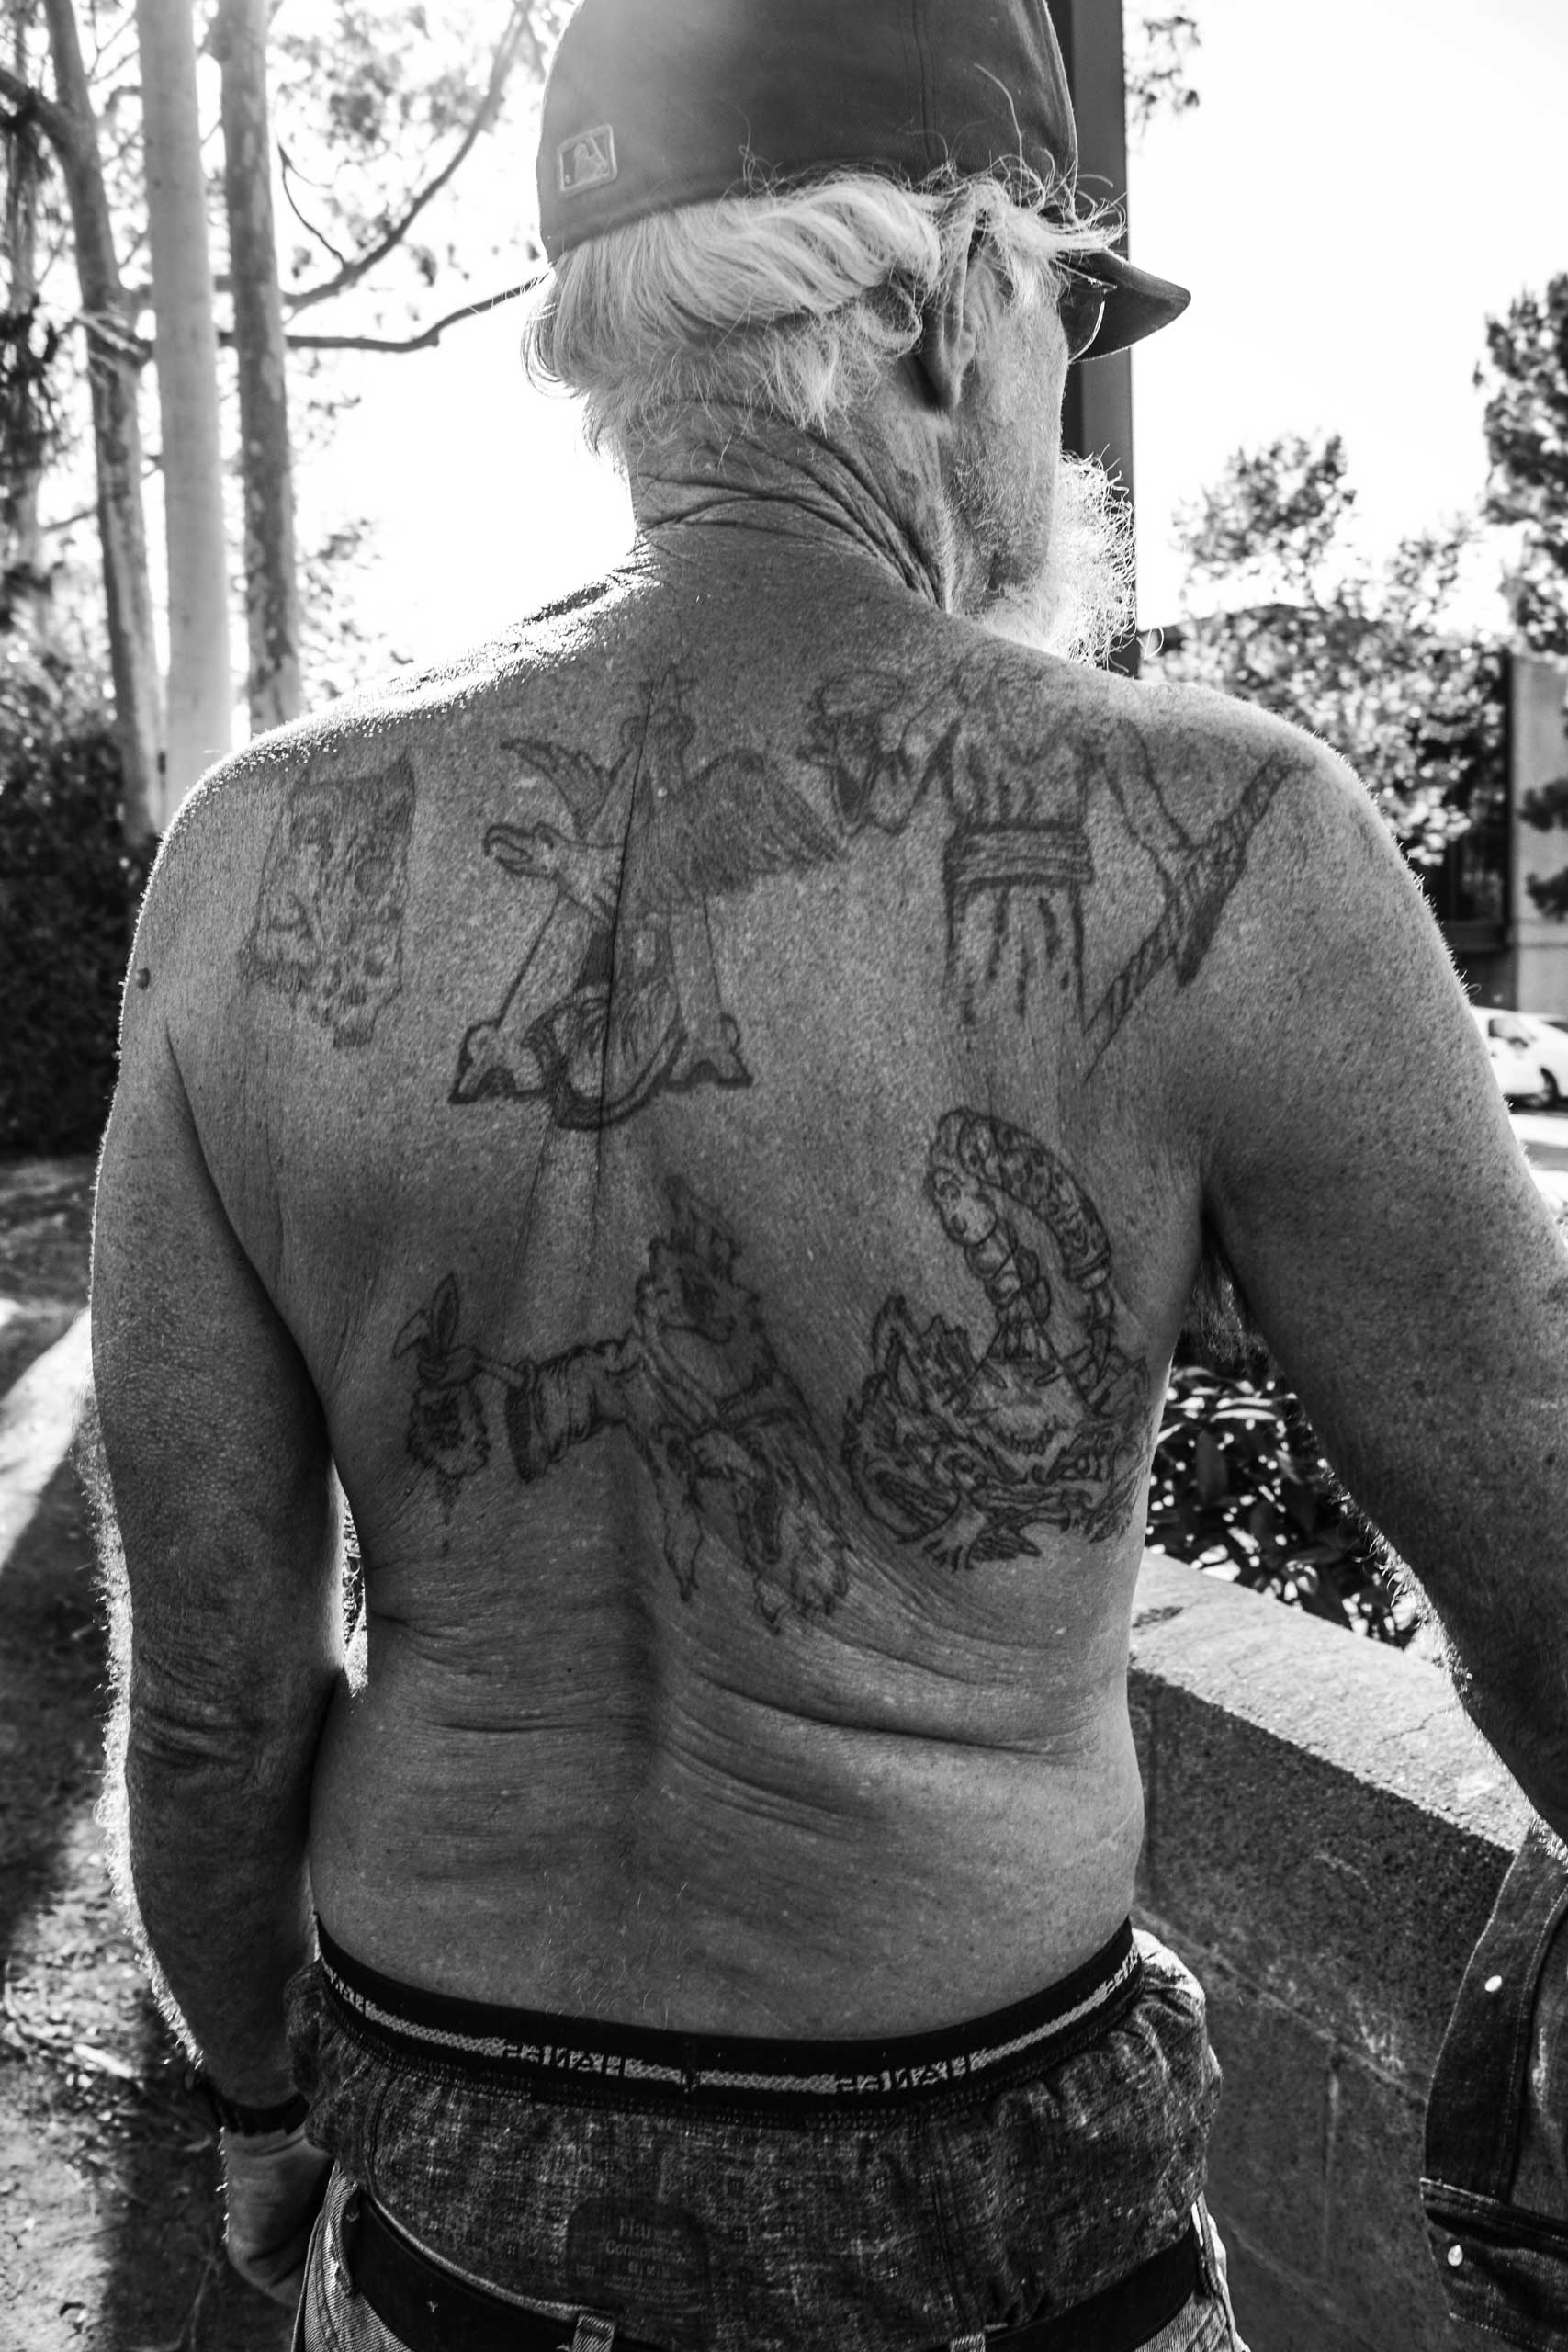 Sept. 24, 2014. Temple Street, Pomona, Calif.                                                               Levi, a homeless veteran, got his tattoos during infantry in Vietnam.  These are important to me because it tells another side of me – my past,  he told Unzueta.